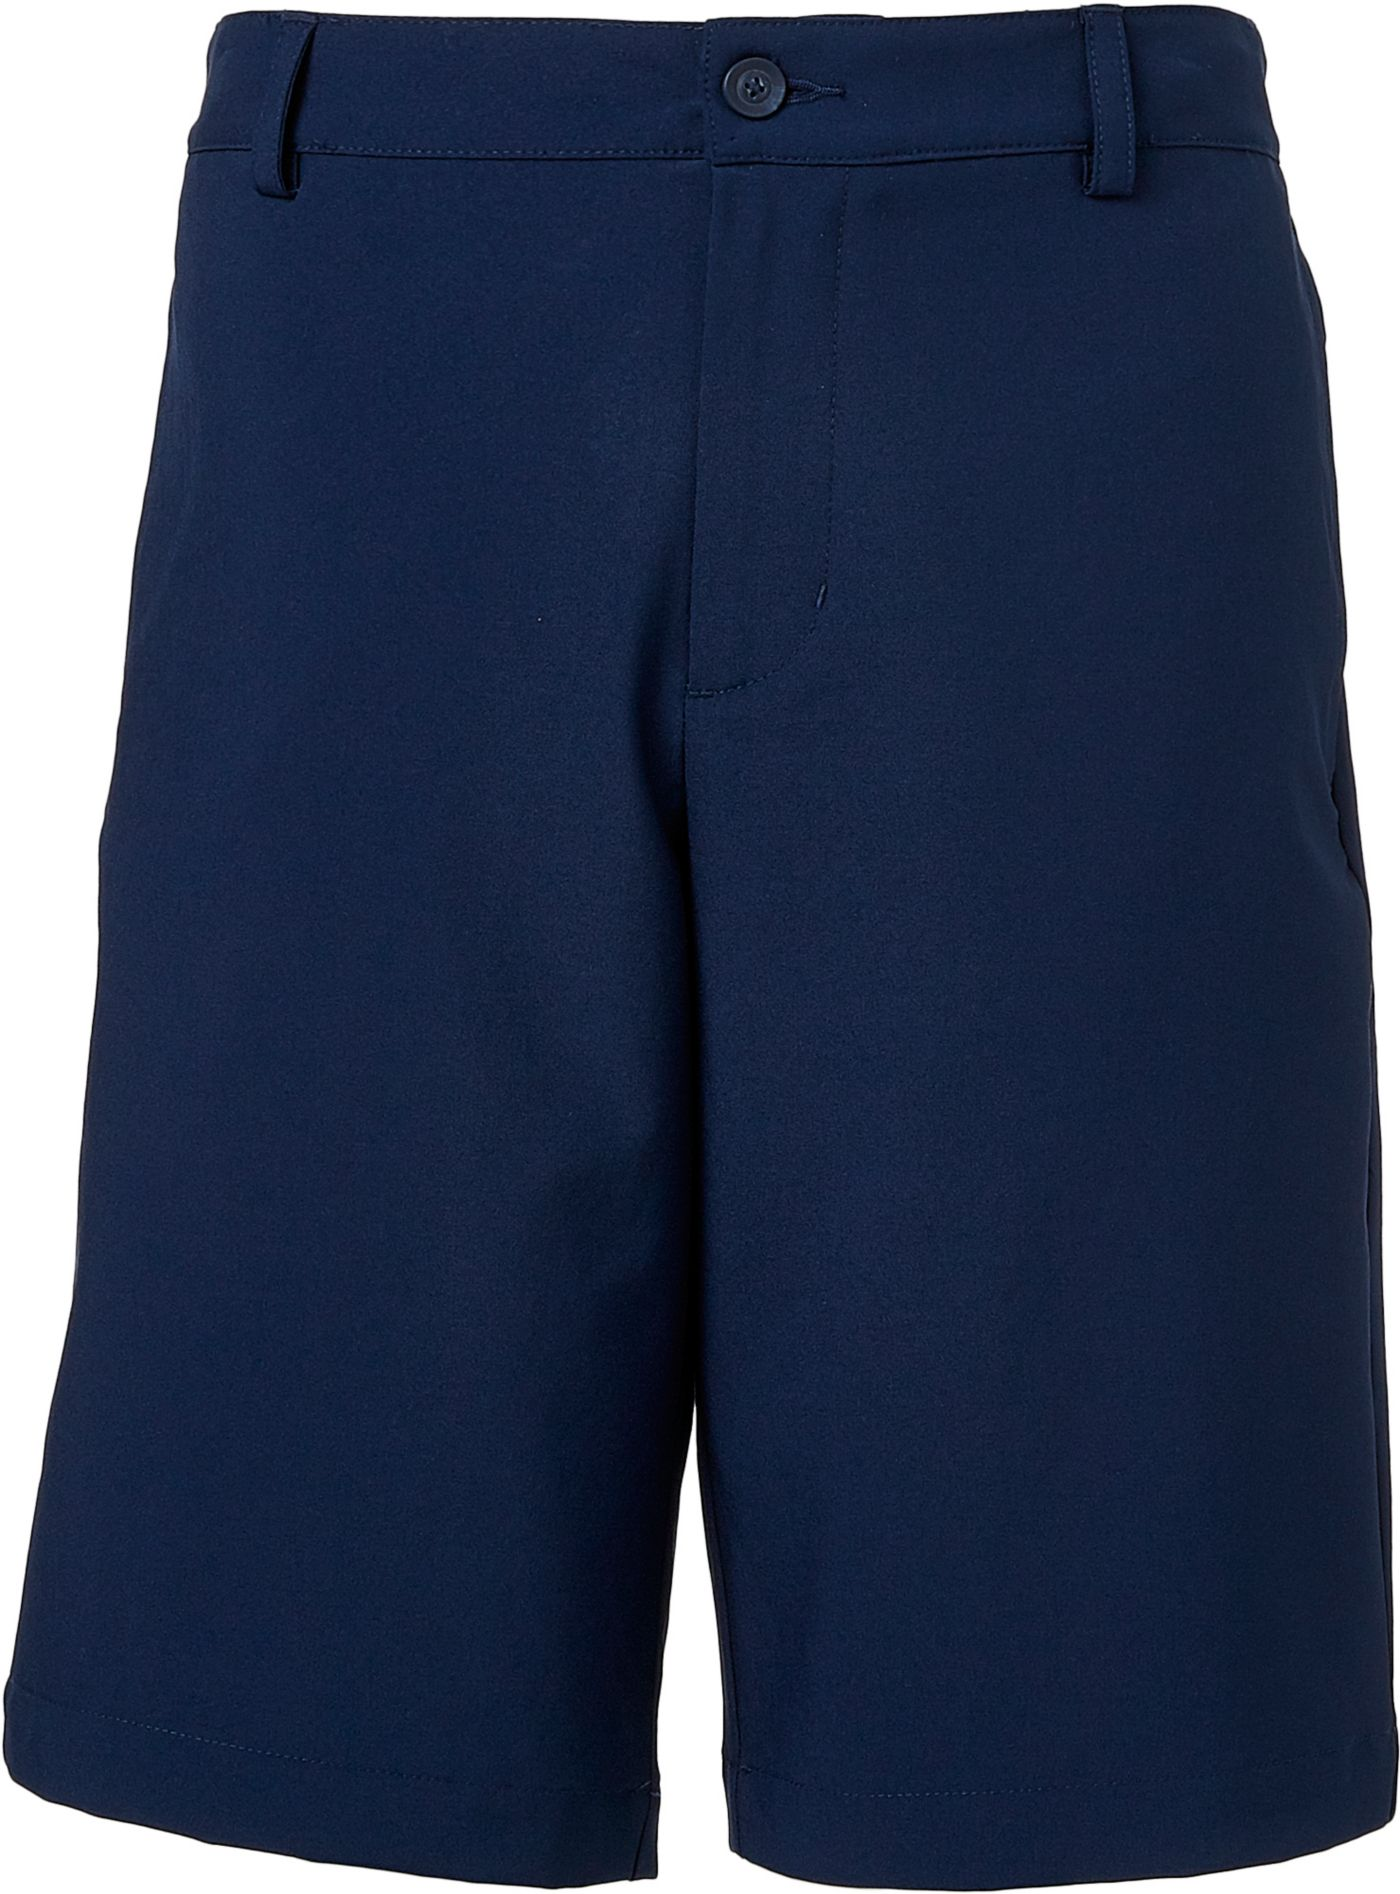 DSG Boys' Solid Golf Shorts